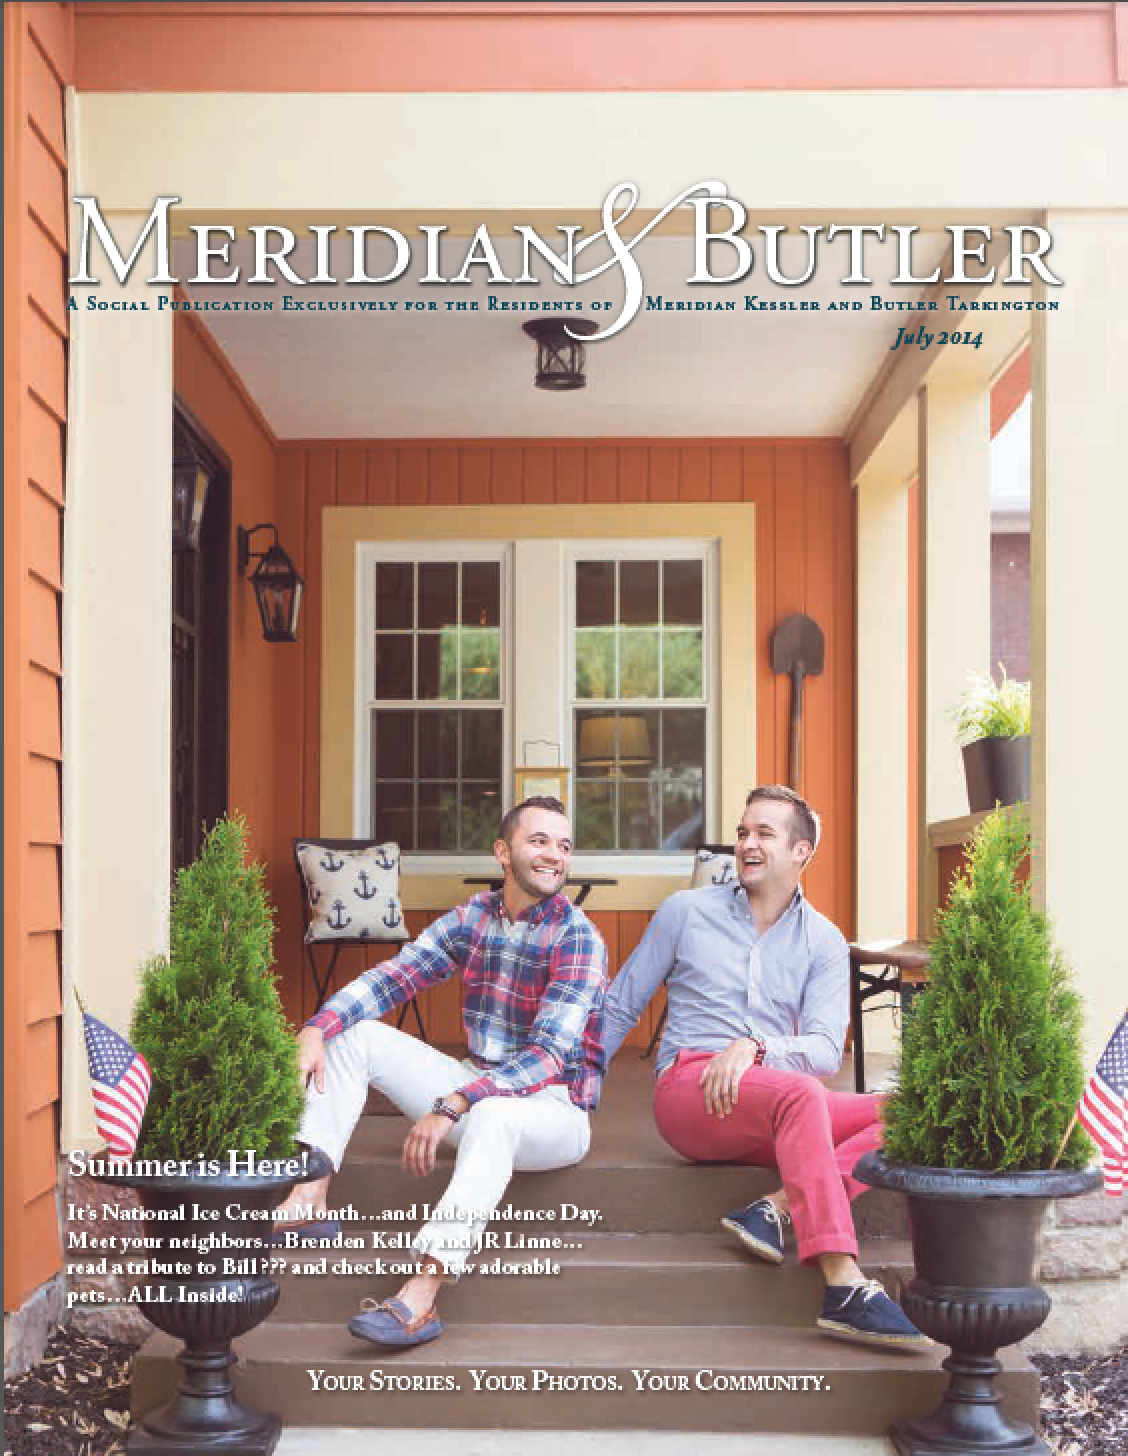 Screen Shot 2014-09-12 at 12.36.46 AM